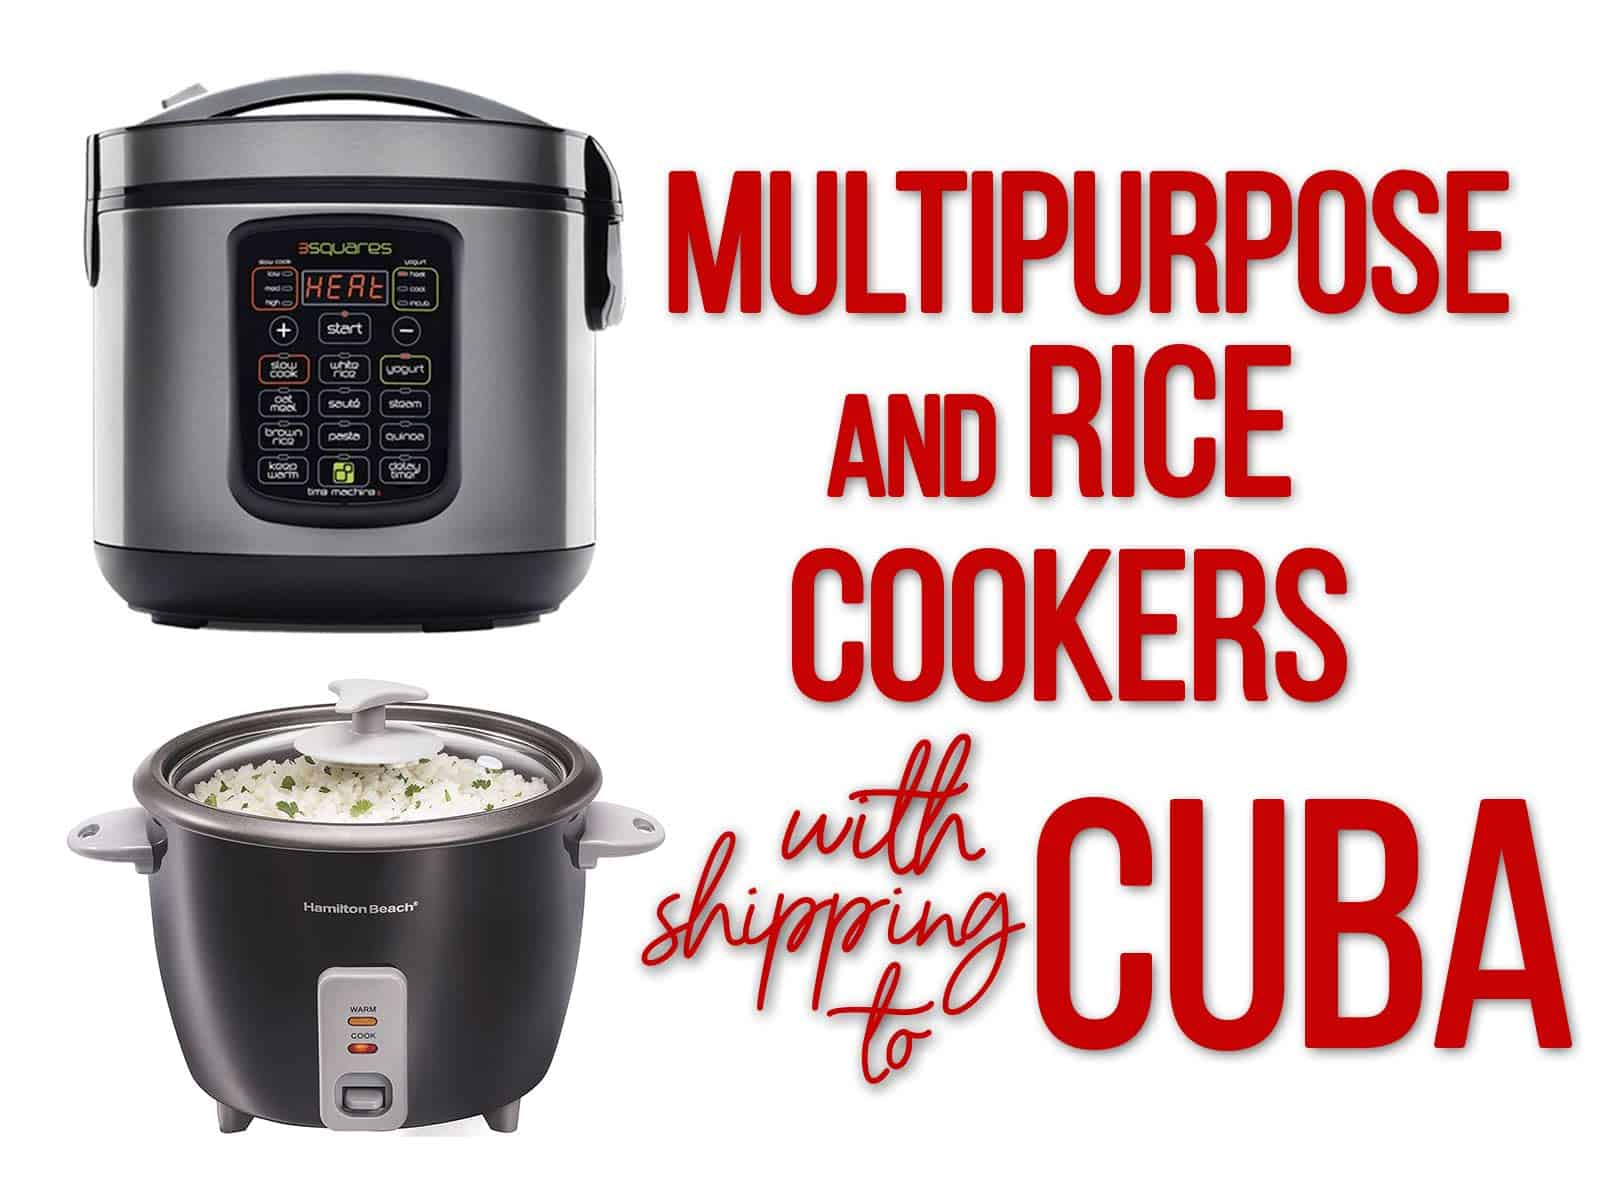 multipurpose cookers and rice cookers cuba